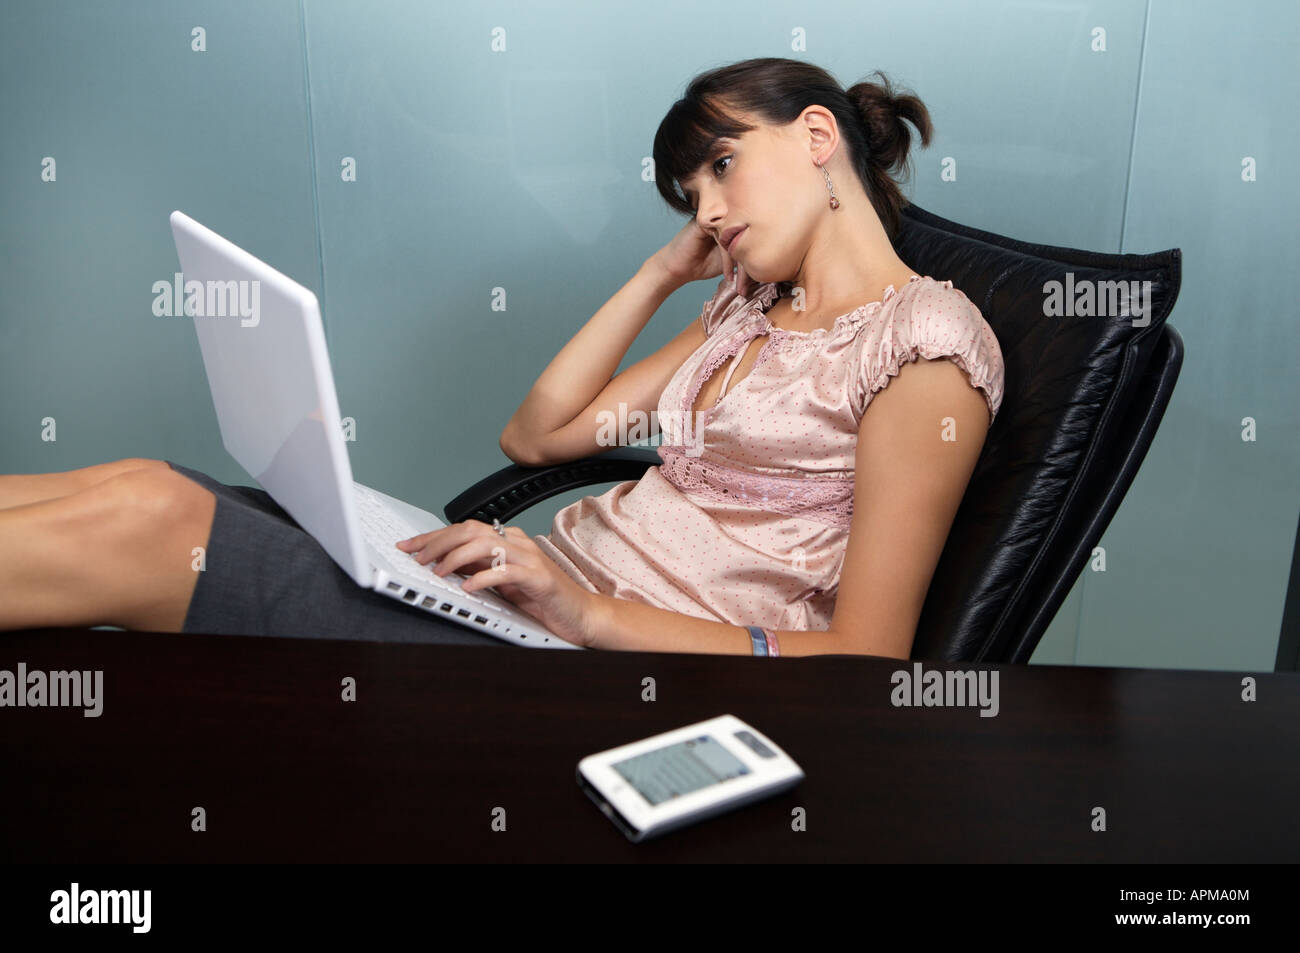 Business woman with her feet on the table using her notebook computer Stock Photo